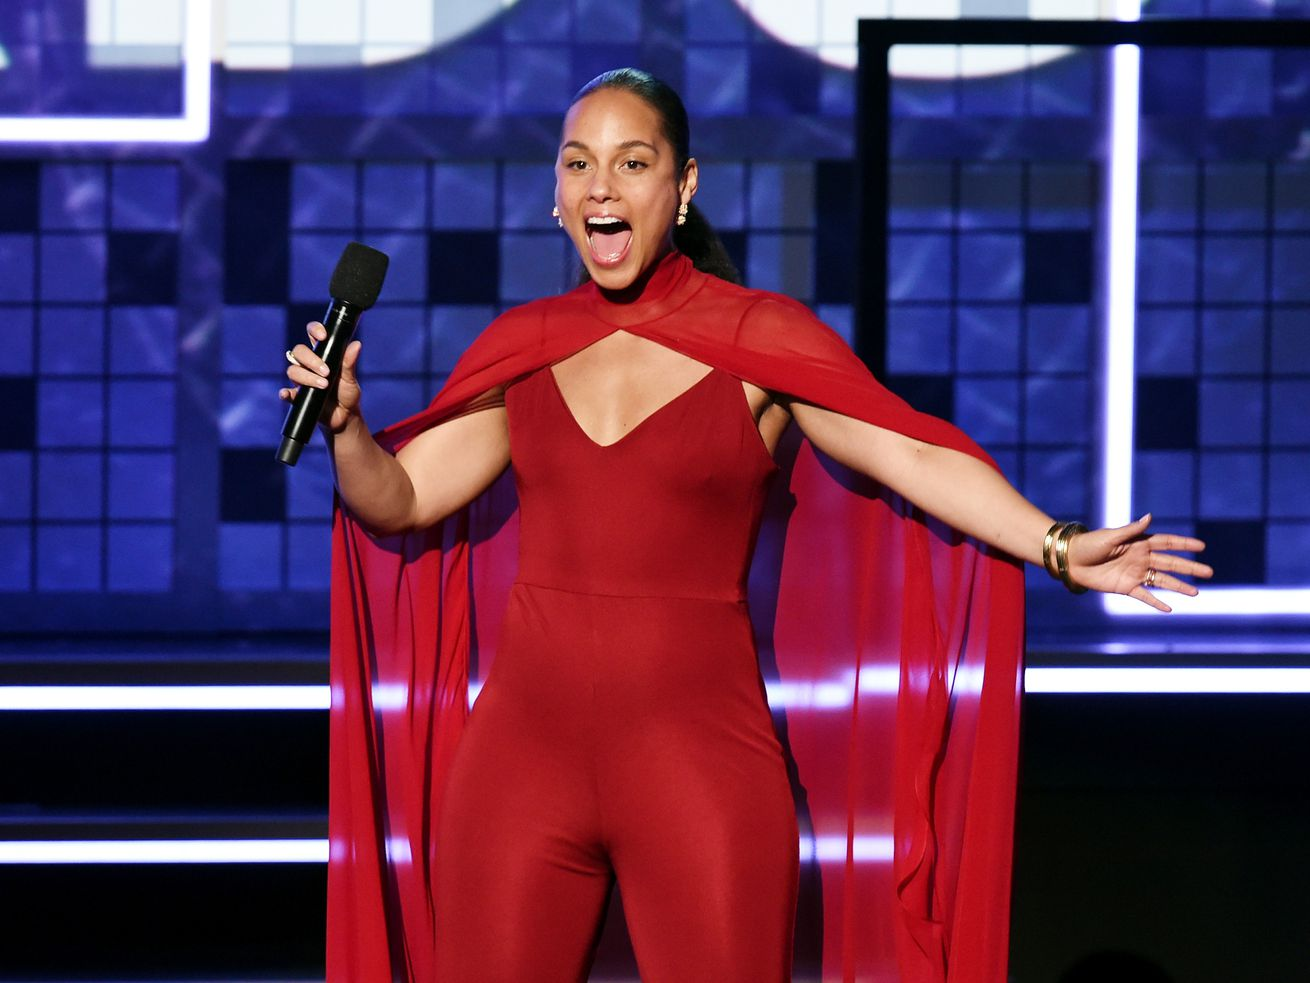 Alicia Keys is so happy to be hosting the 2019 Grammys, you guys.